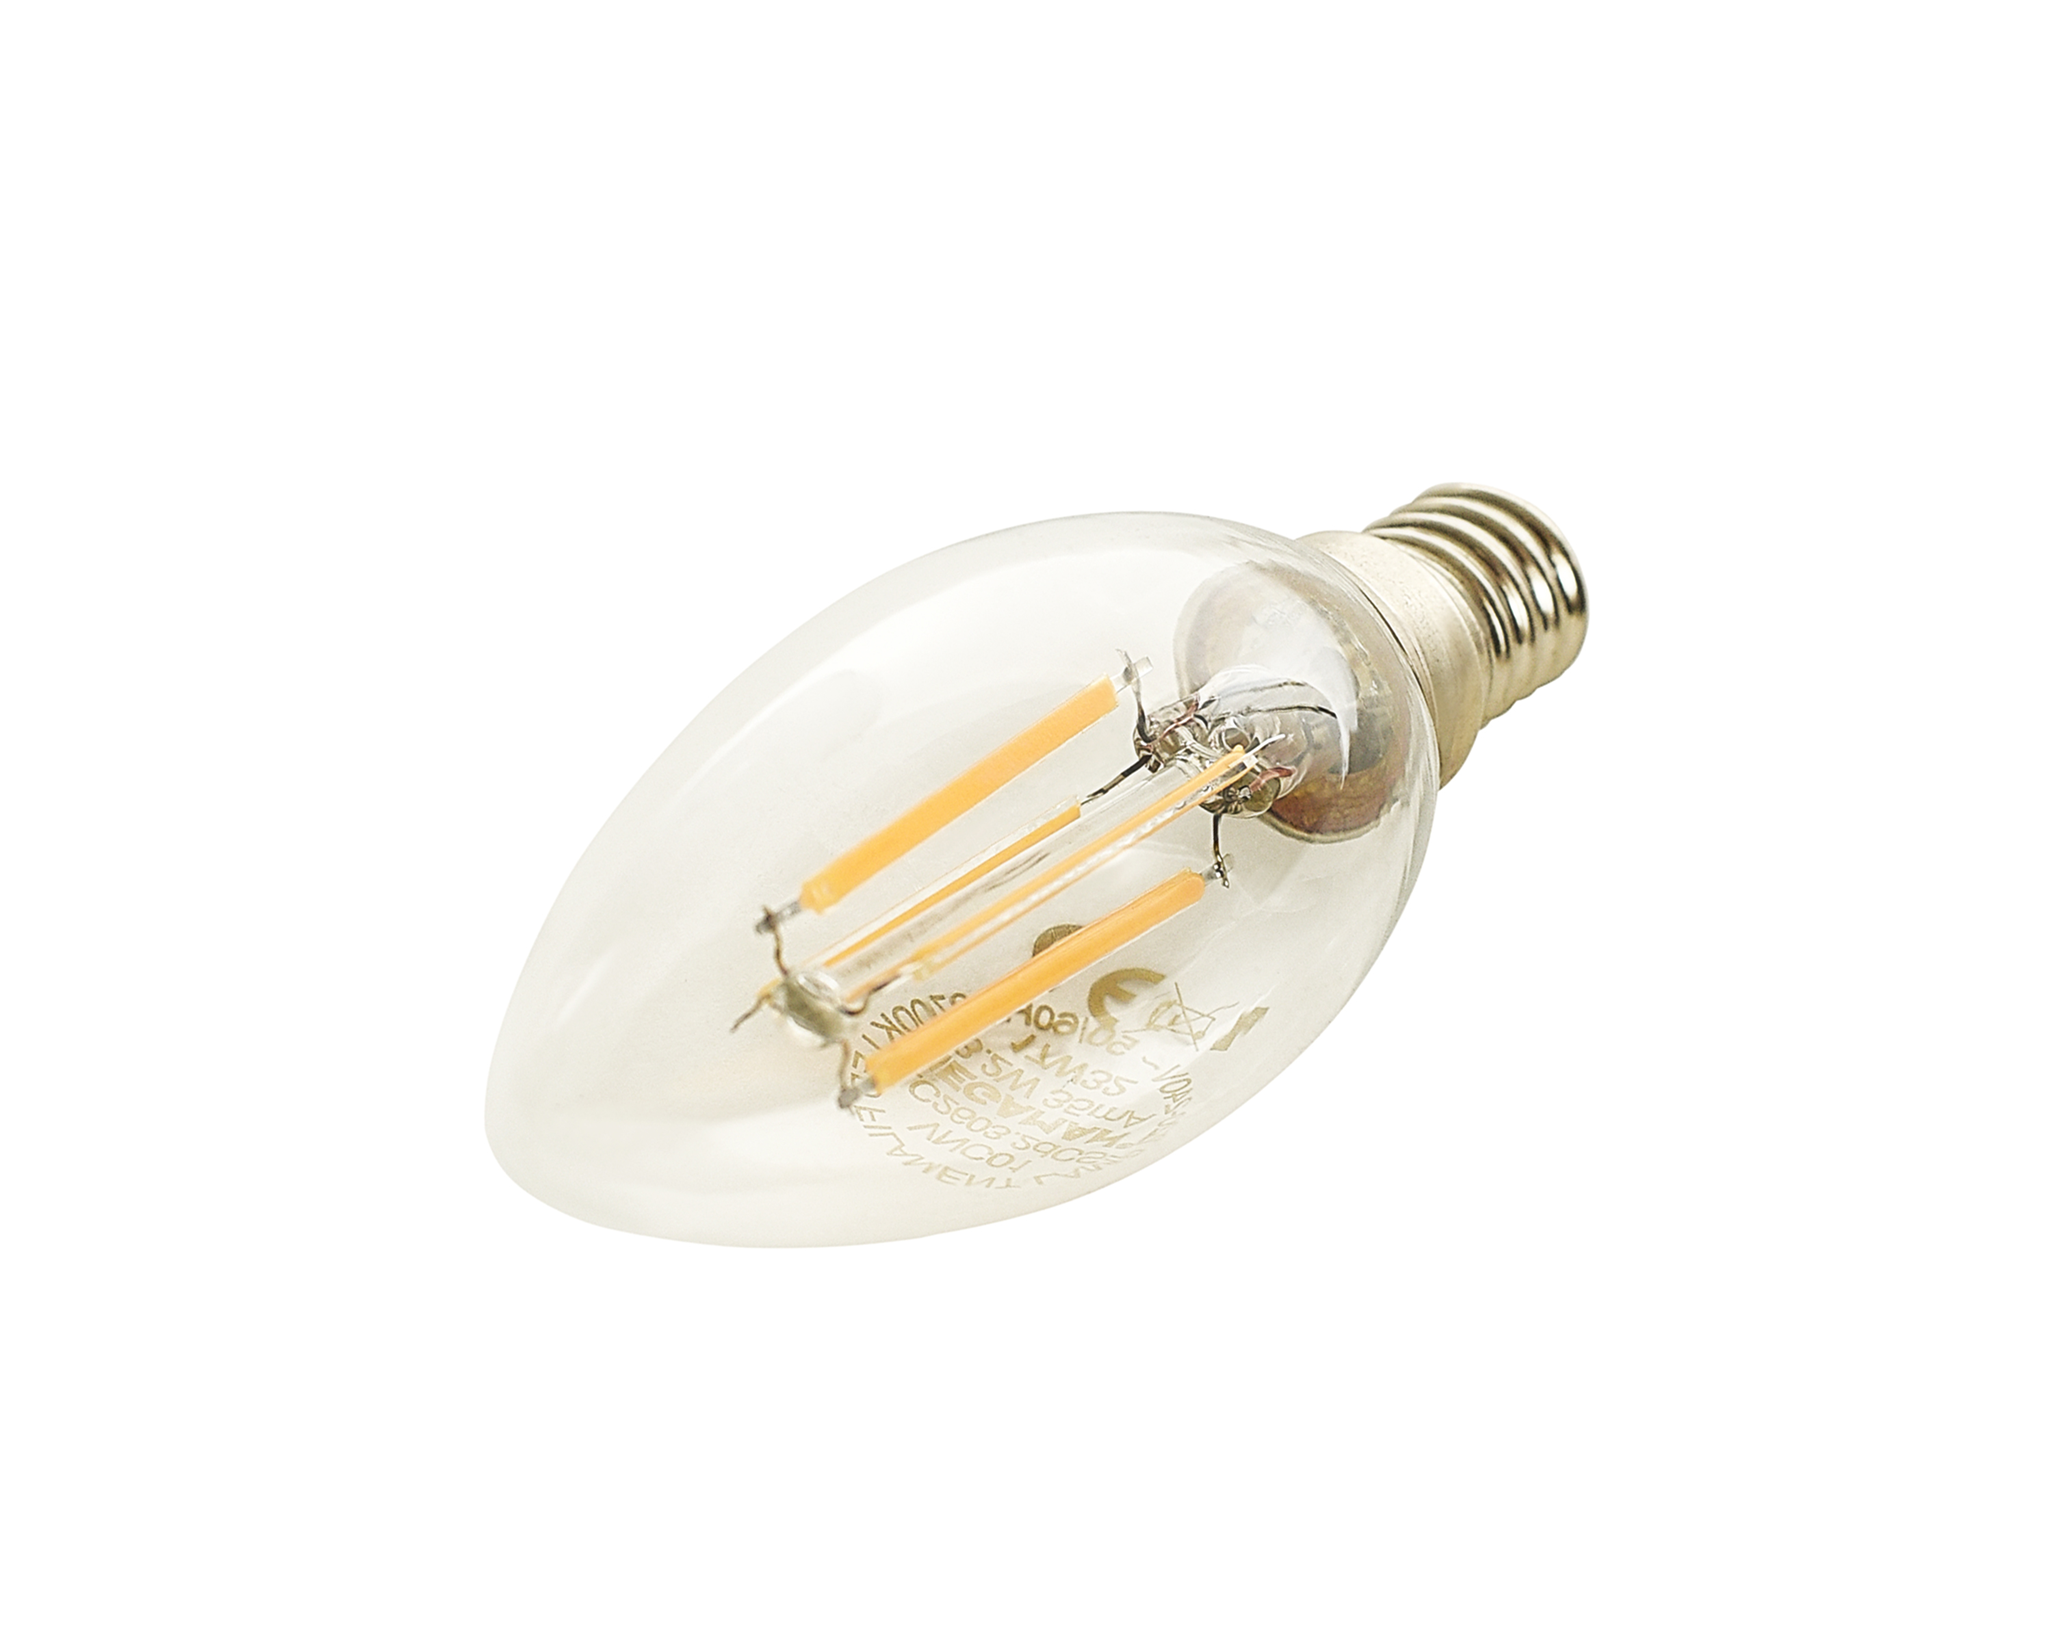 C35 Candle Clear 4W 2700K E14 CRI80 320lm Filament LED Bulb